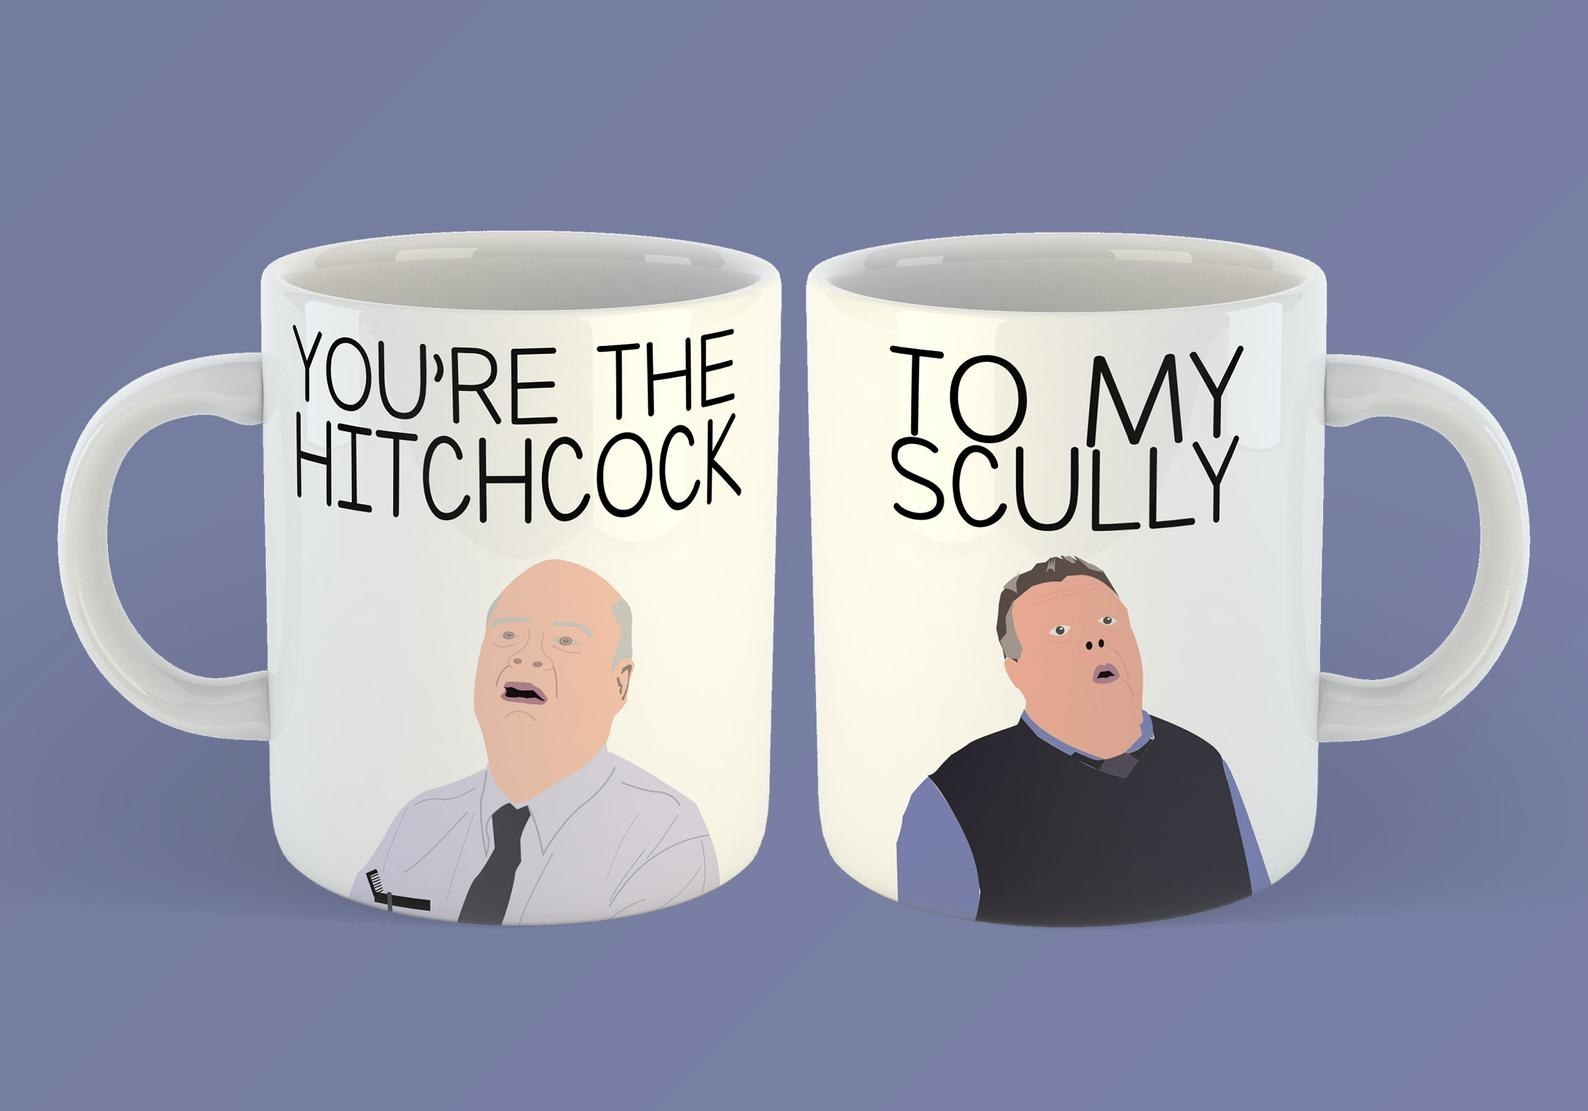 """A mug that says """"you're the hitchcock"""" with a drawing of him on one side and """"to my scully"""" with a drawing of him on the other side"""